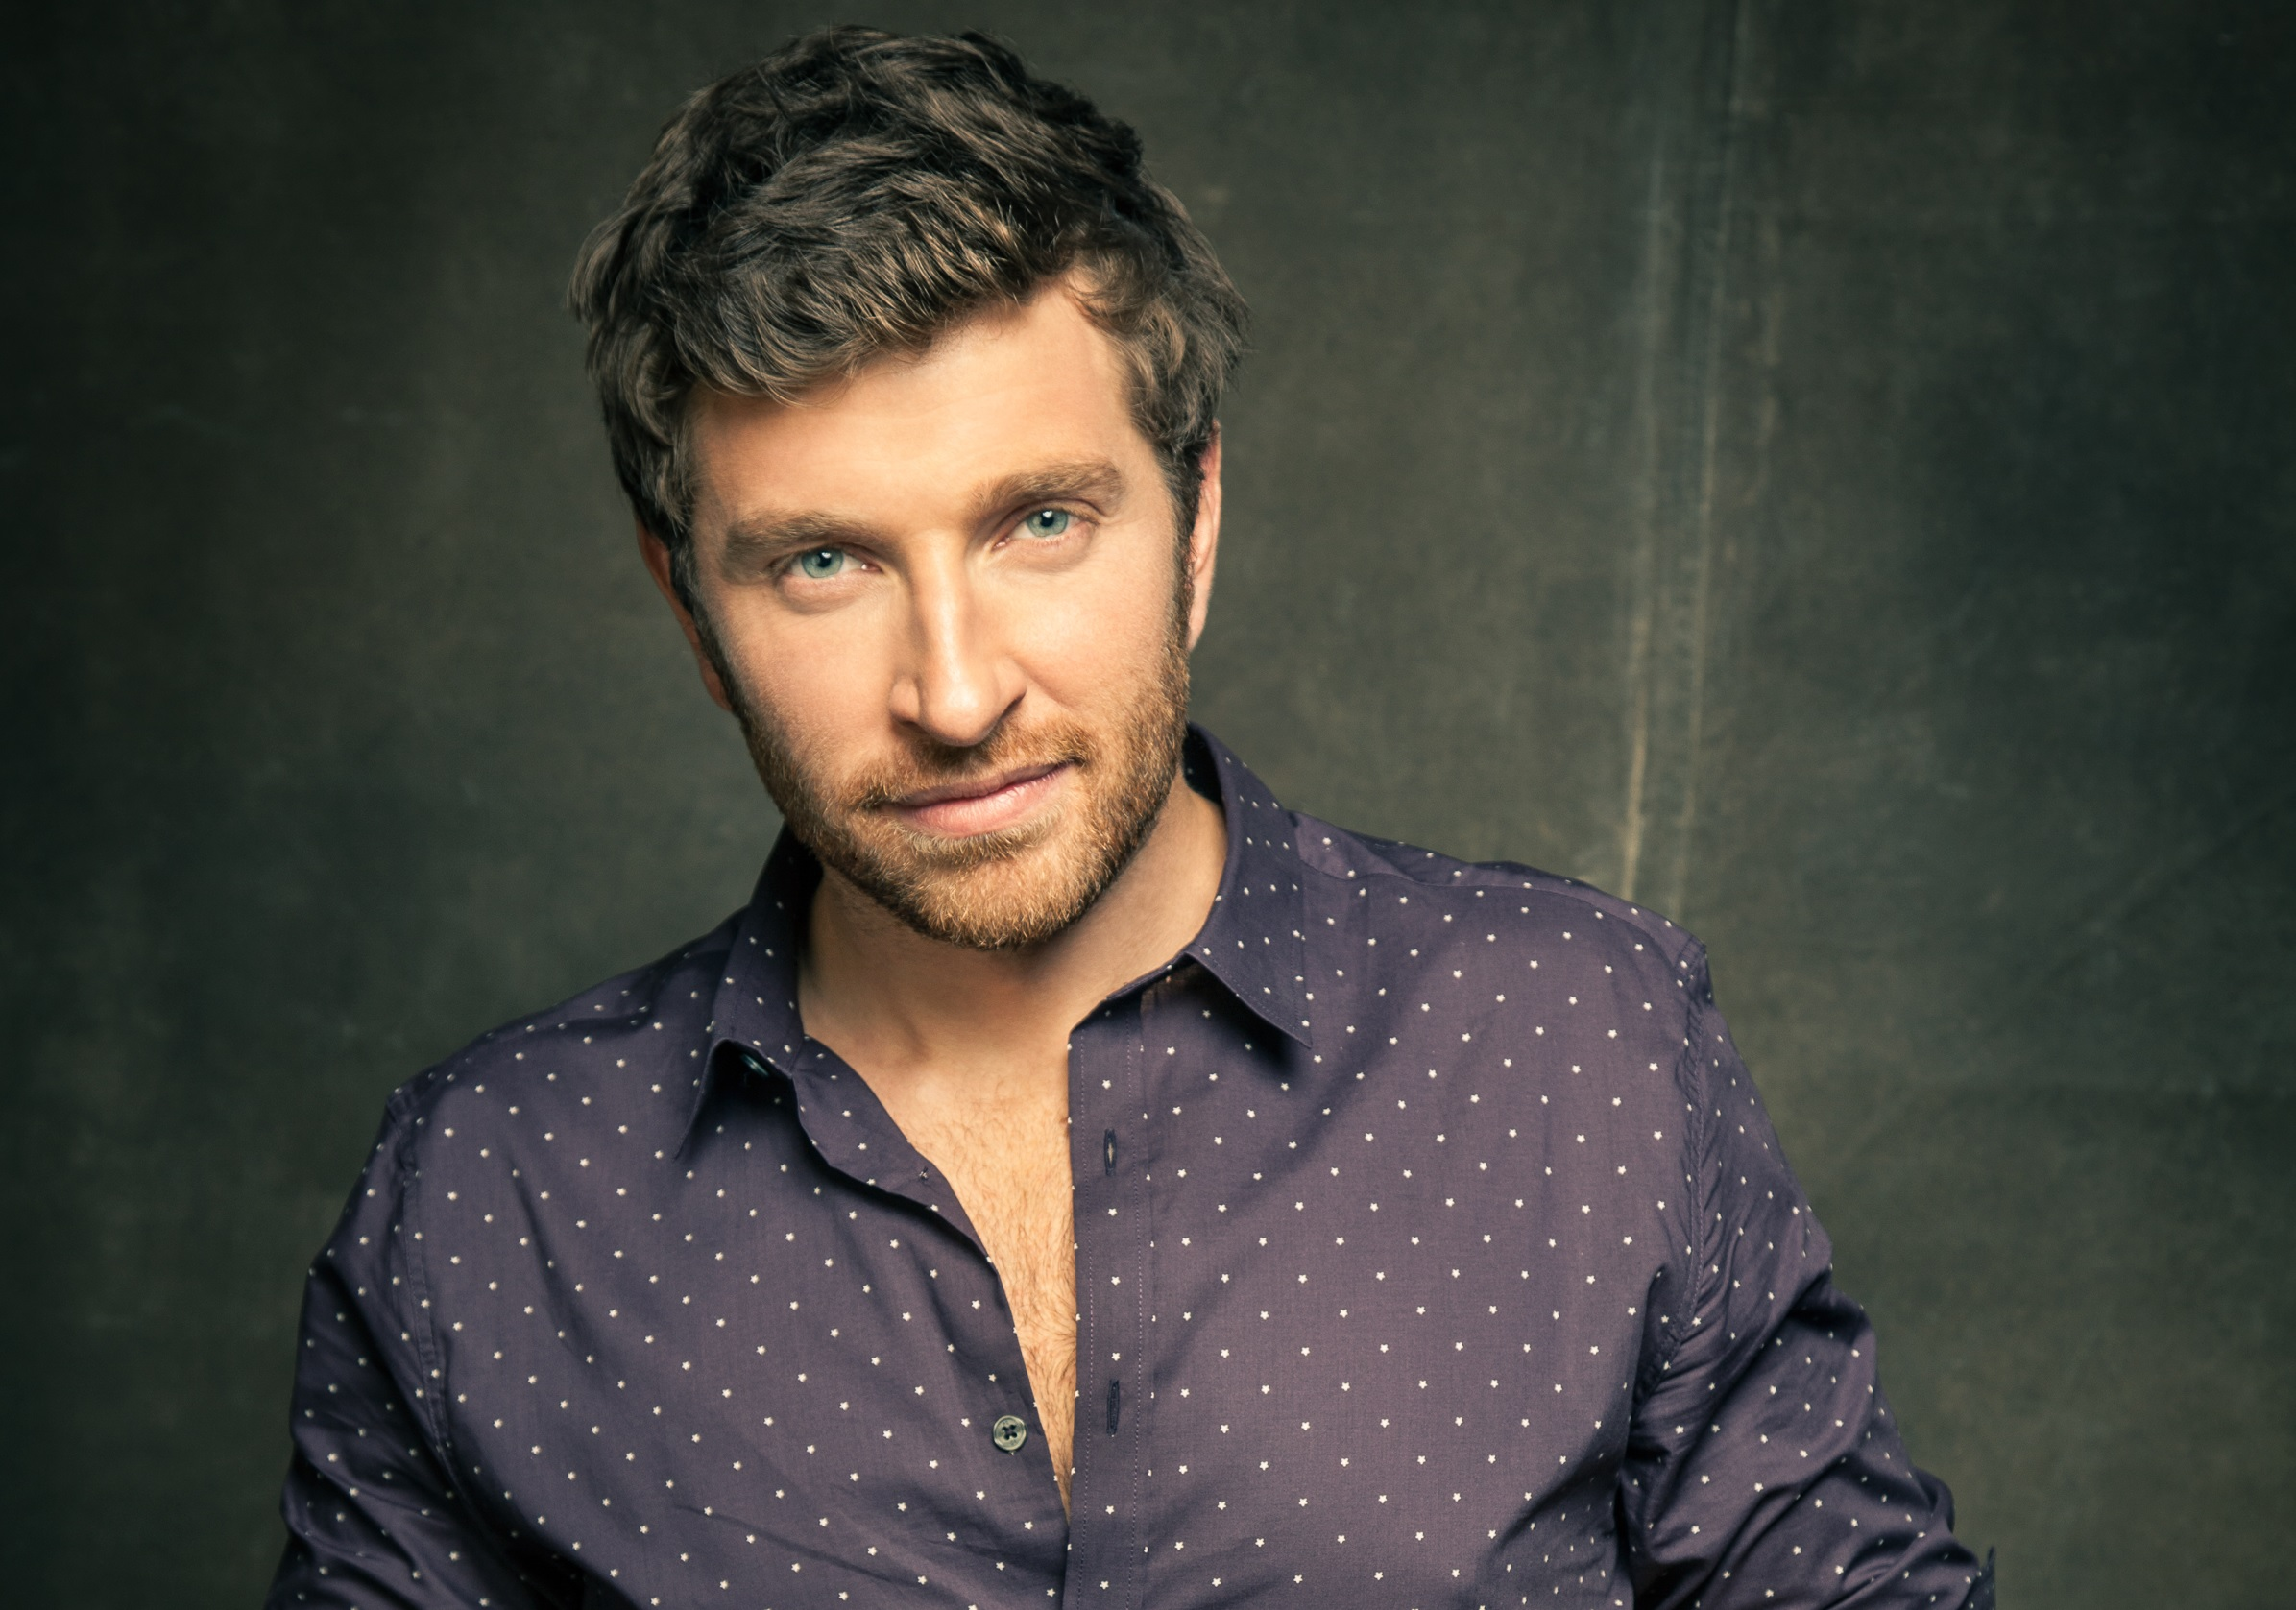 What We Learned from Brett Eldredge's Buzzfeed Interview